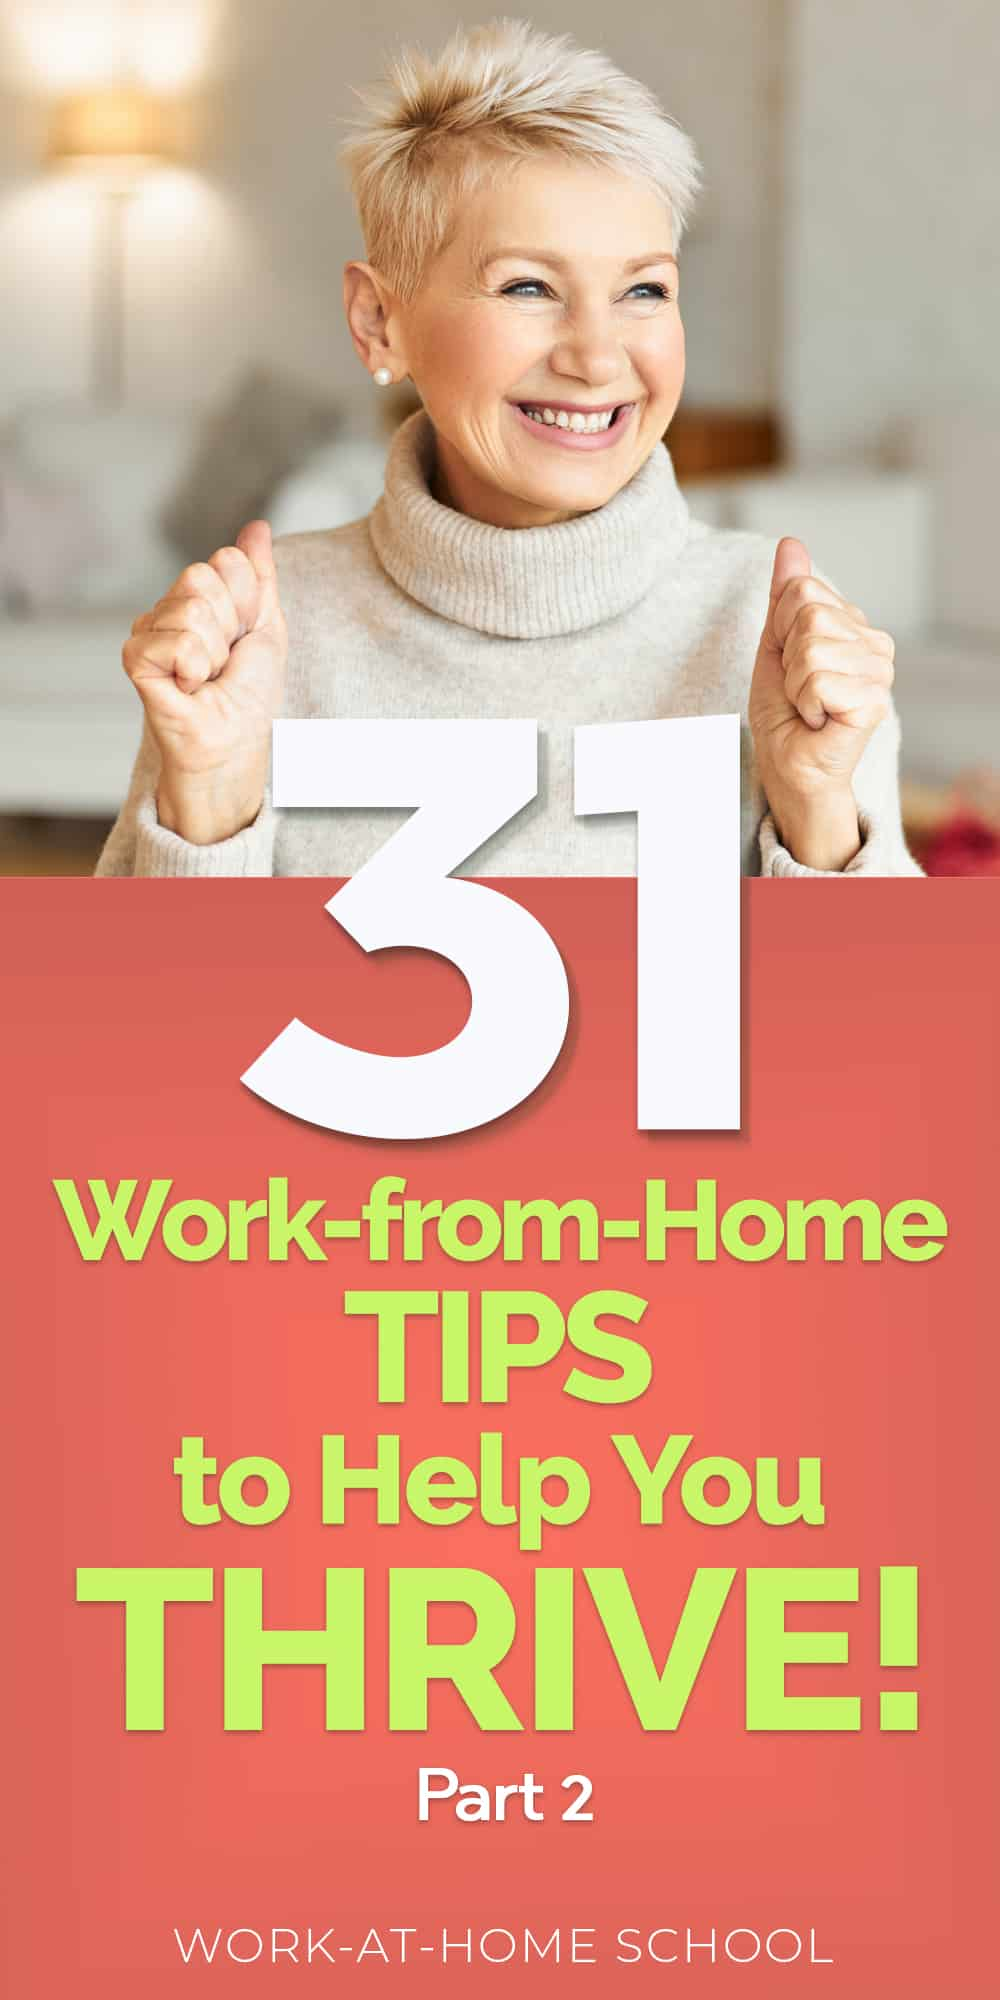 Follow these work-at-home tips and take control of your success into your own hands!